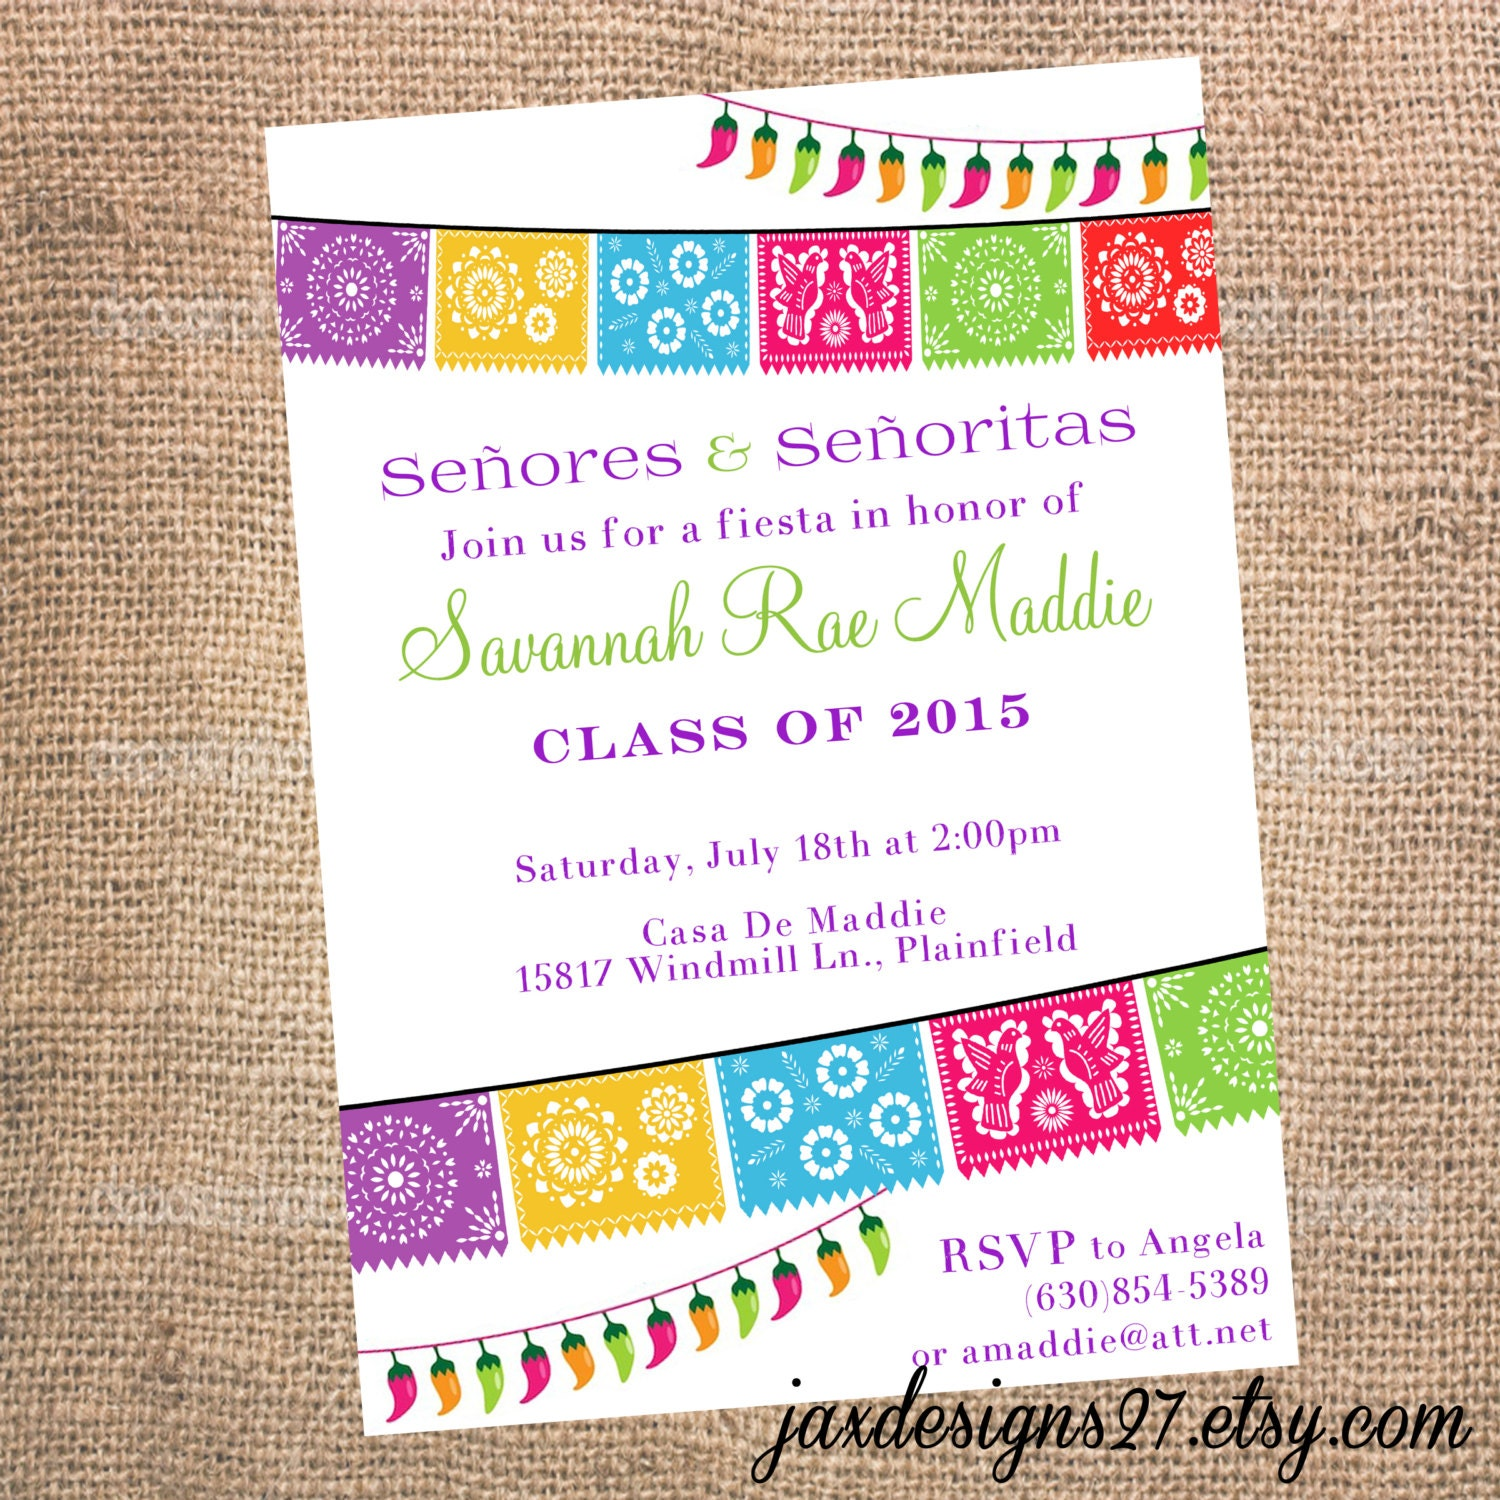 Mexican themed party invitations doritrcatodos mexican themed party invitations filmwisefo